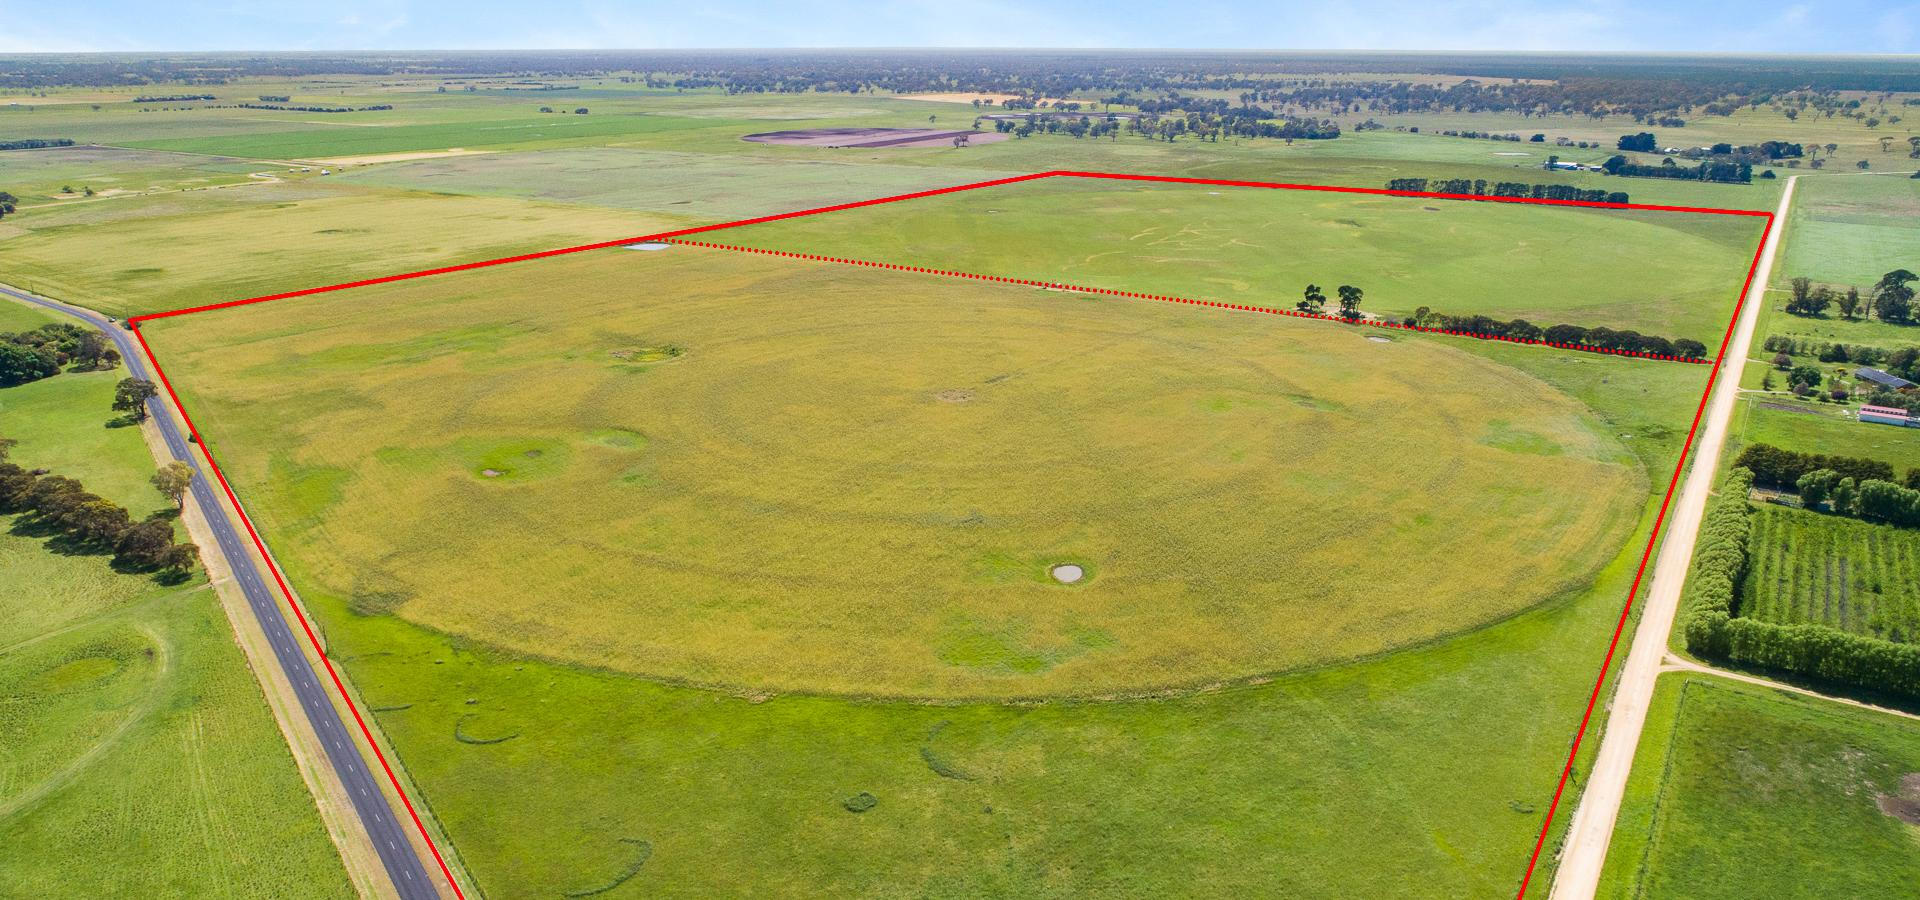 Lot 1 'McDonalds' Reliable Cropping/Grazing Land